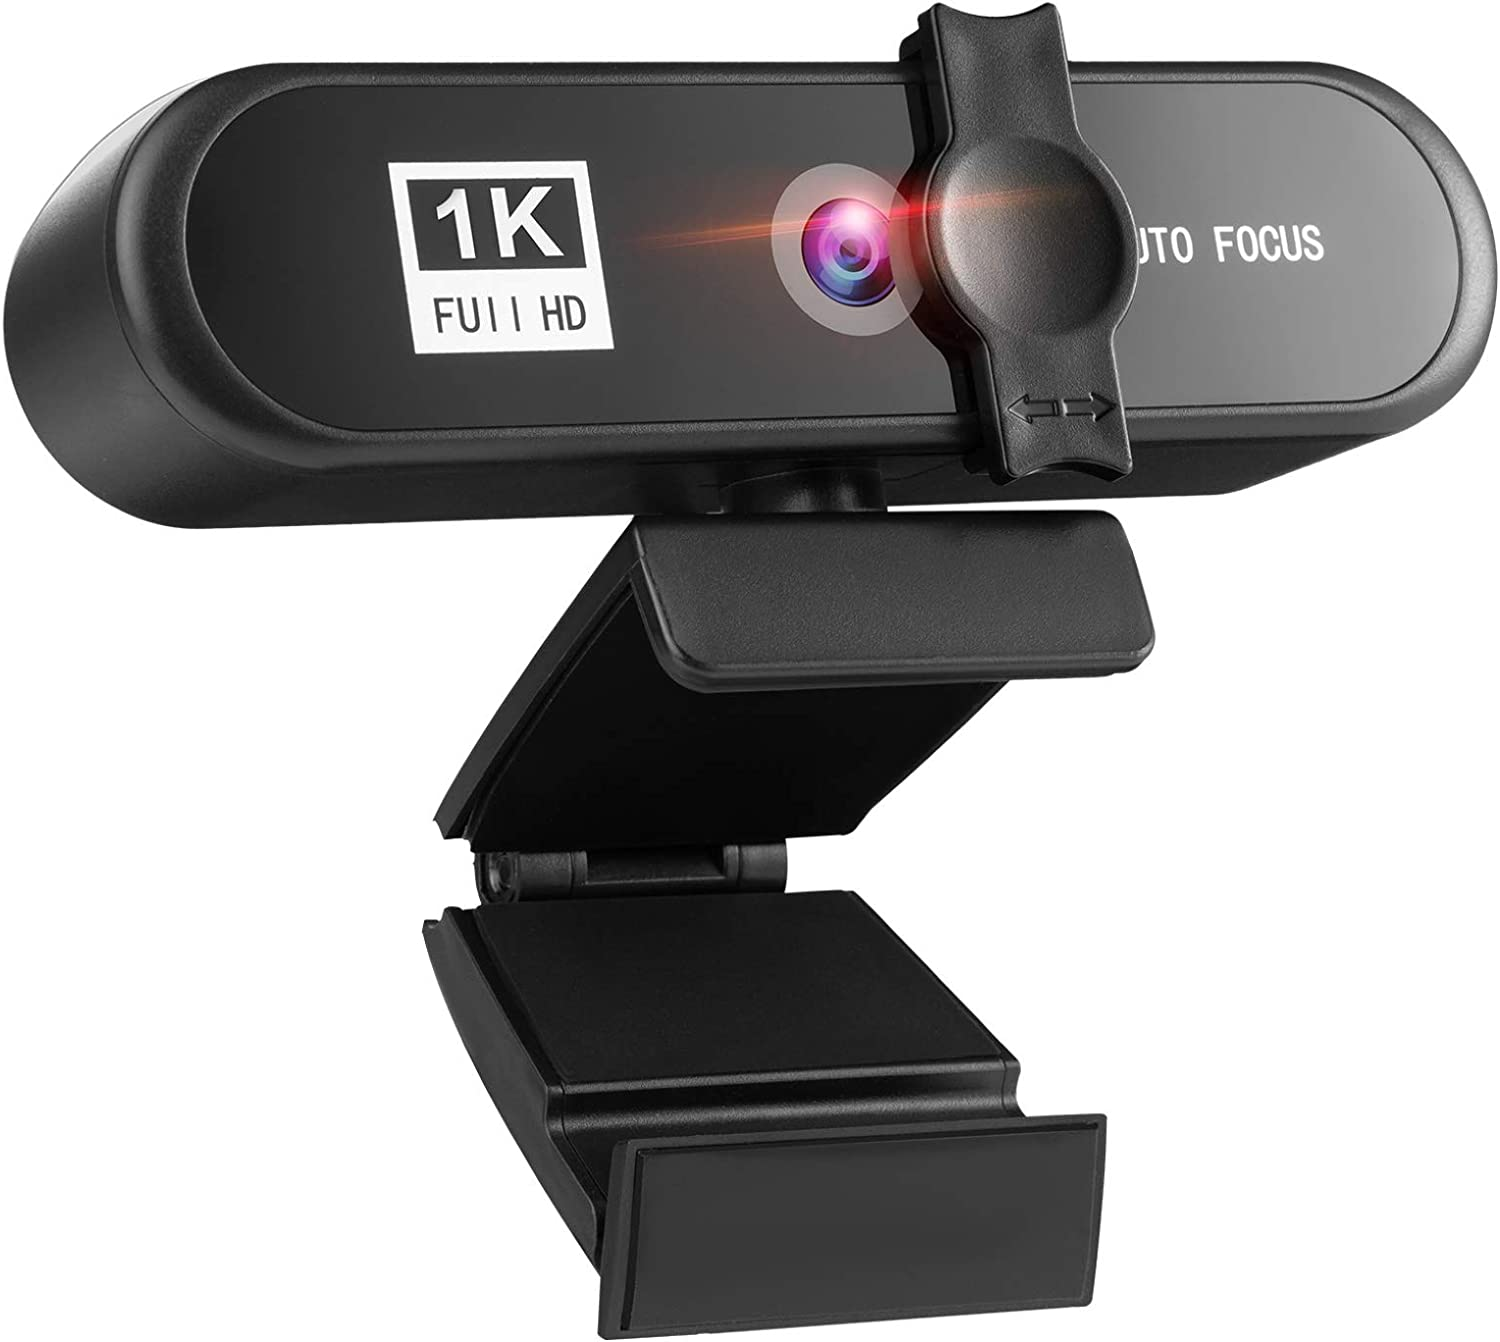 HEART SPEAKER Sale Price reduction Special Price HD 1080P Network Live Conference Camera G Notebook